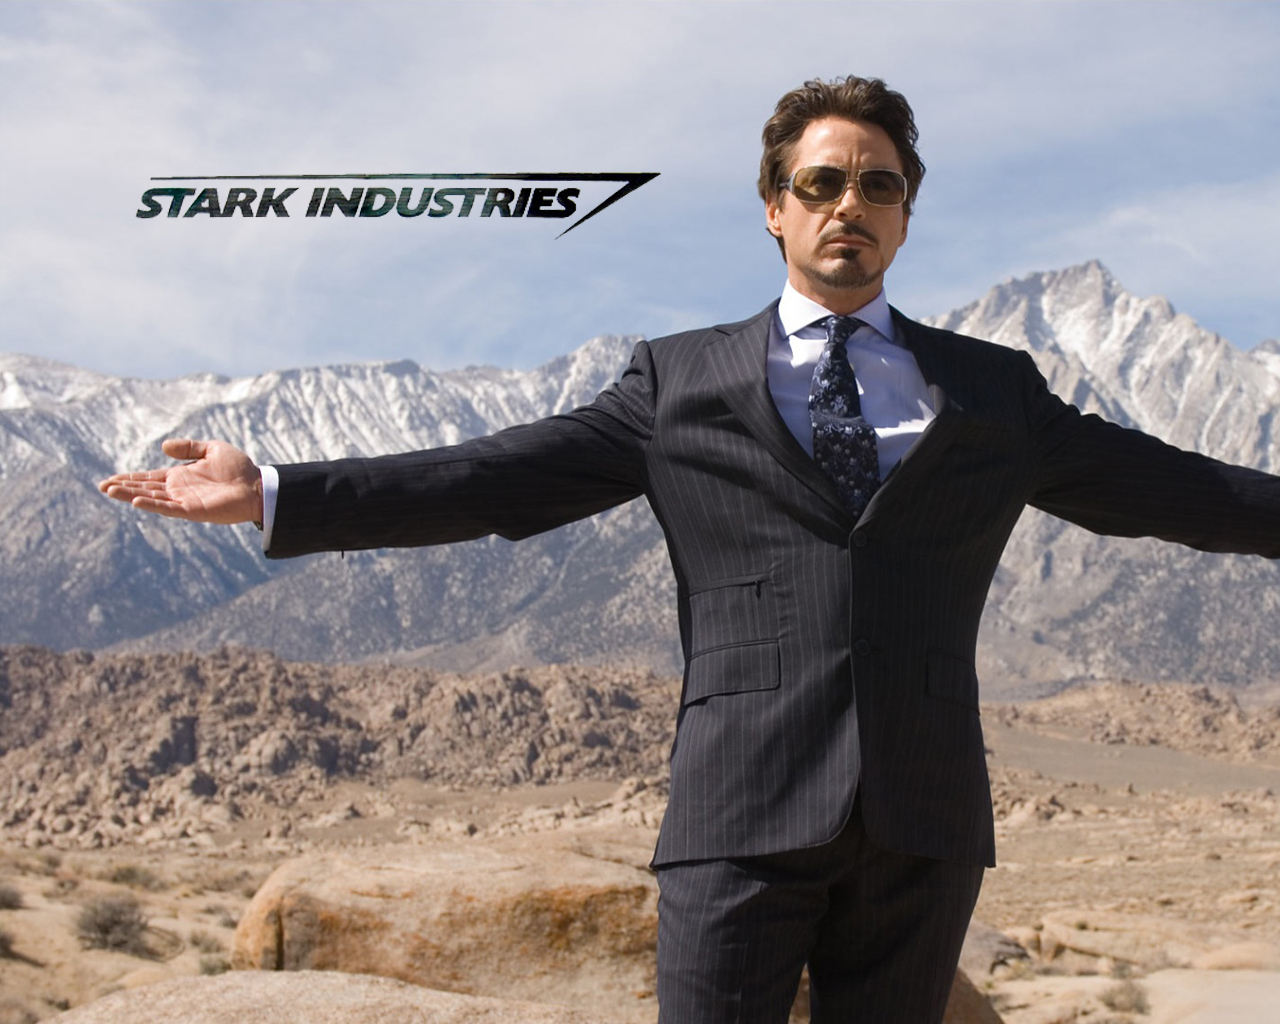 tony stark images hd - photo #41